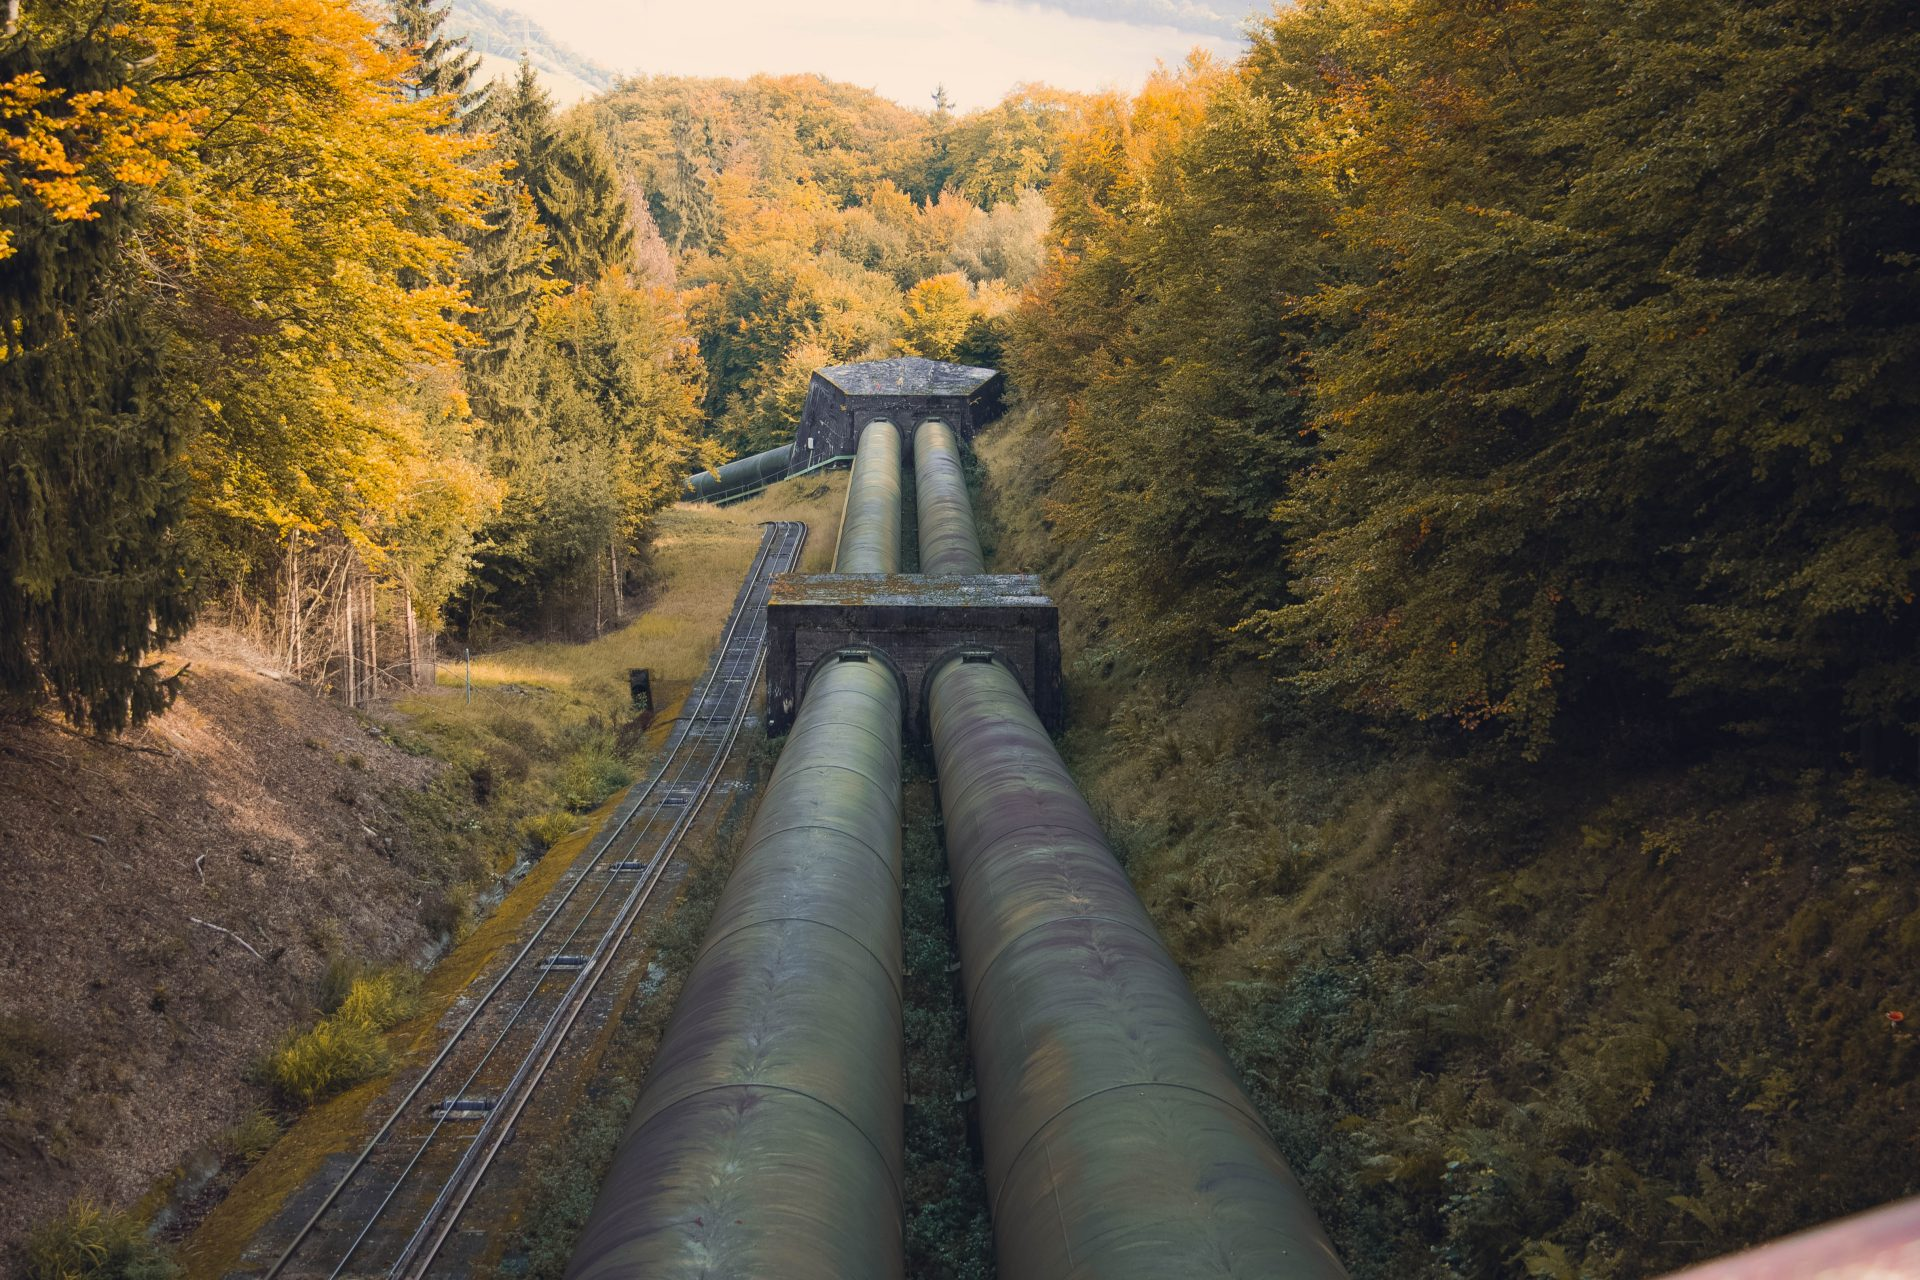 EPA Rule Change Limits States' Ability to Block Pipeline Approvals